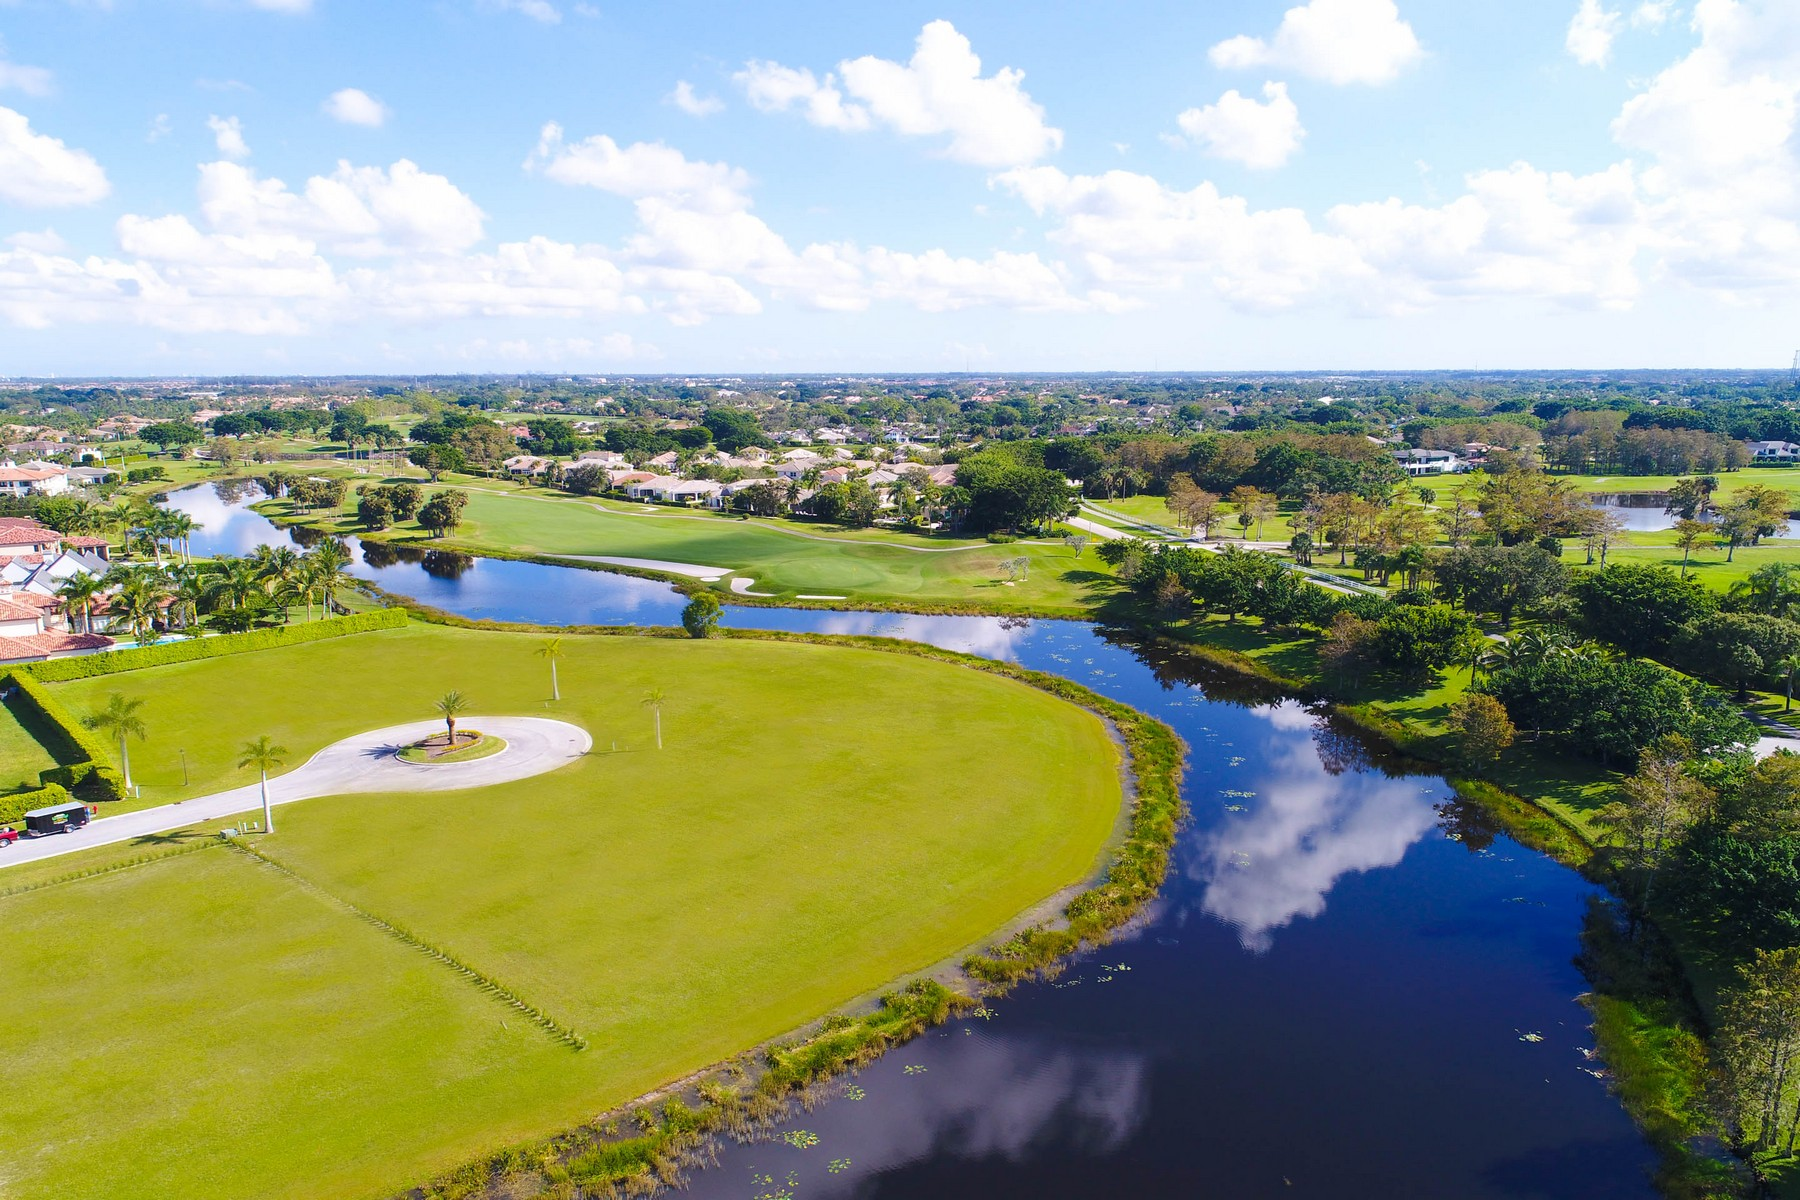 Land for Sale at 2510, 15 & 20 Cypress Island Court Wellington, Florida, 33414 United States